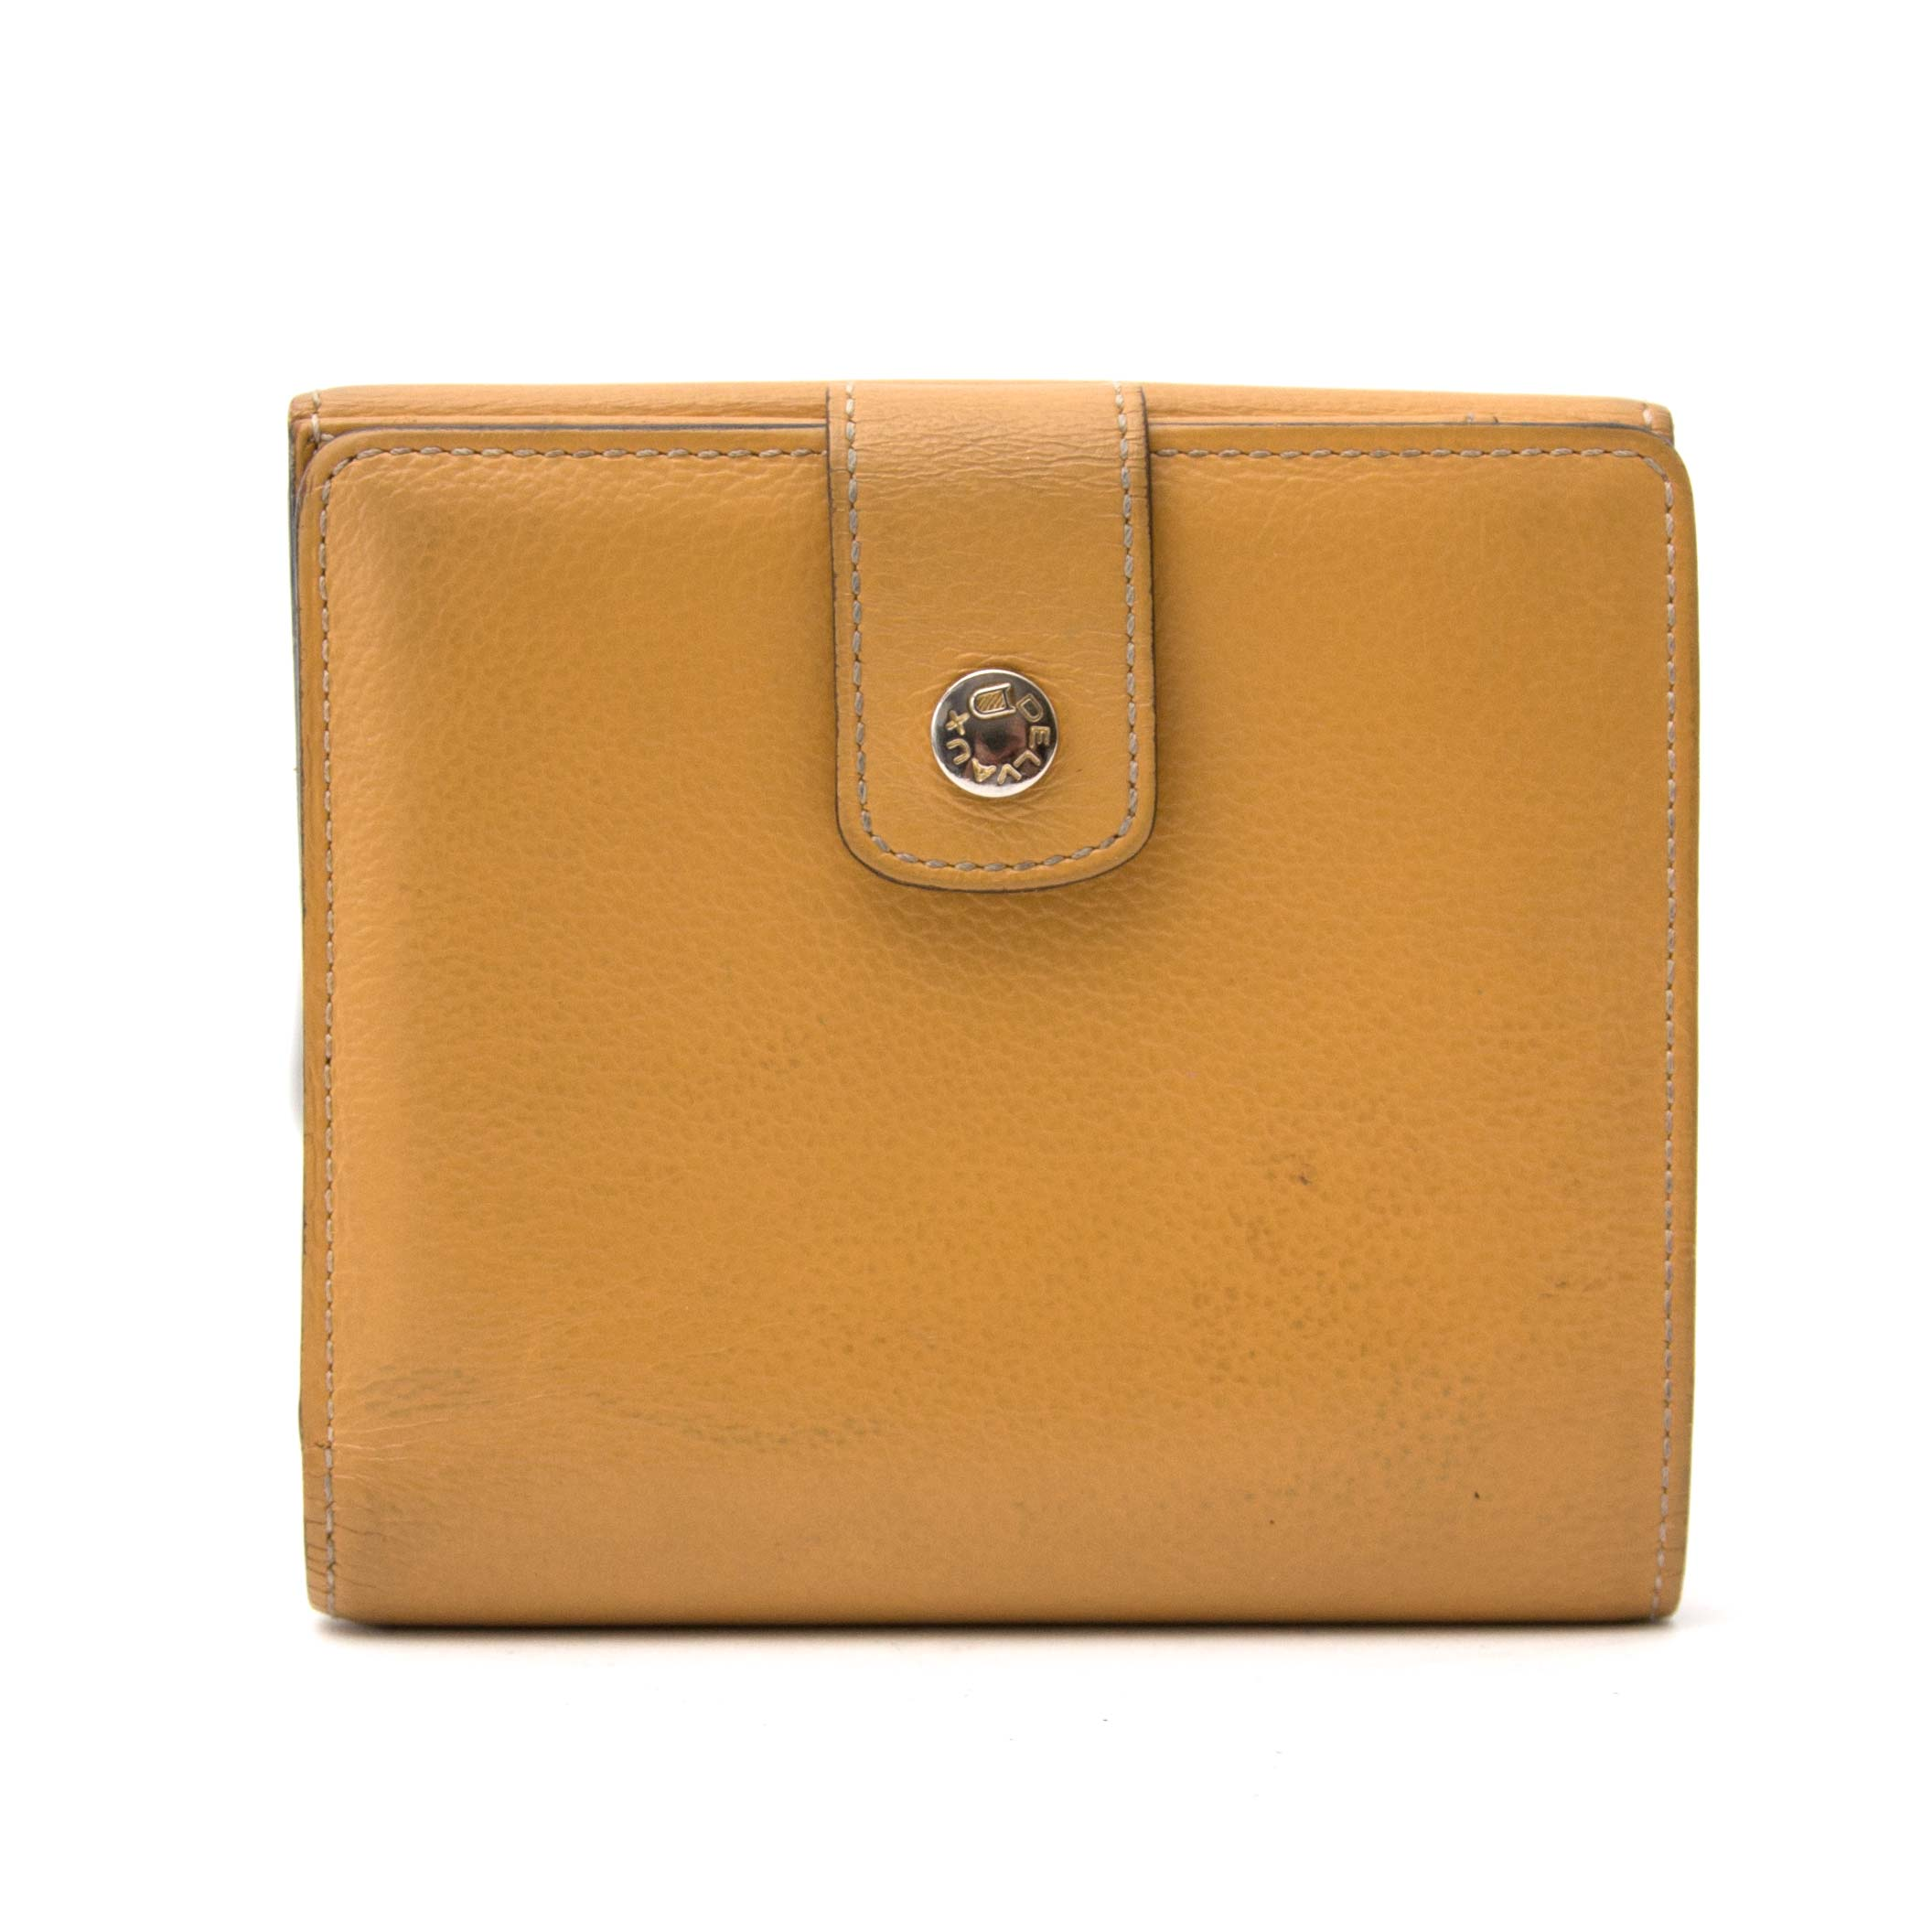 achetez enligne secondmain Delvaux Dark Yellow Wallet chez labellov.com